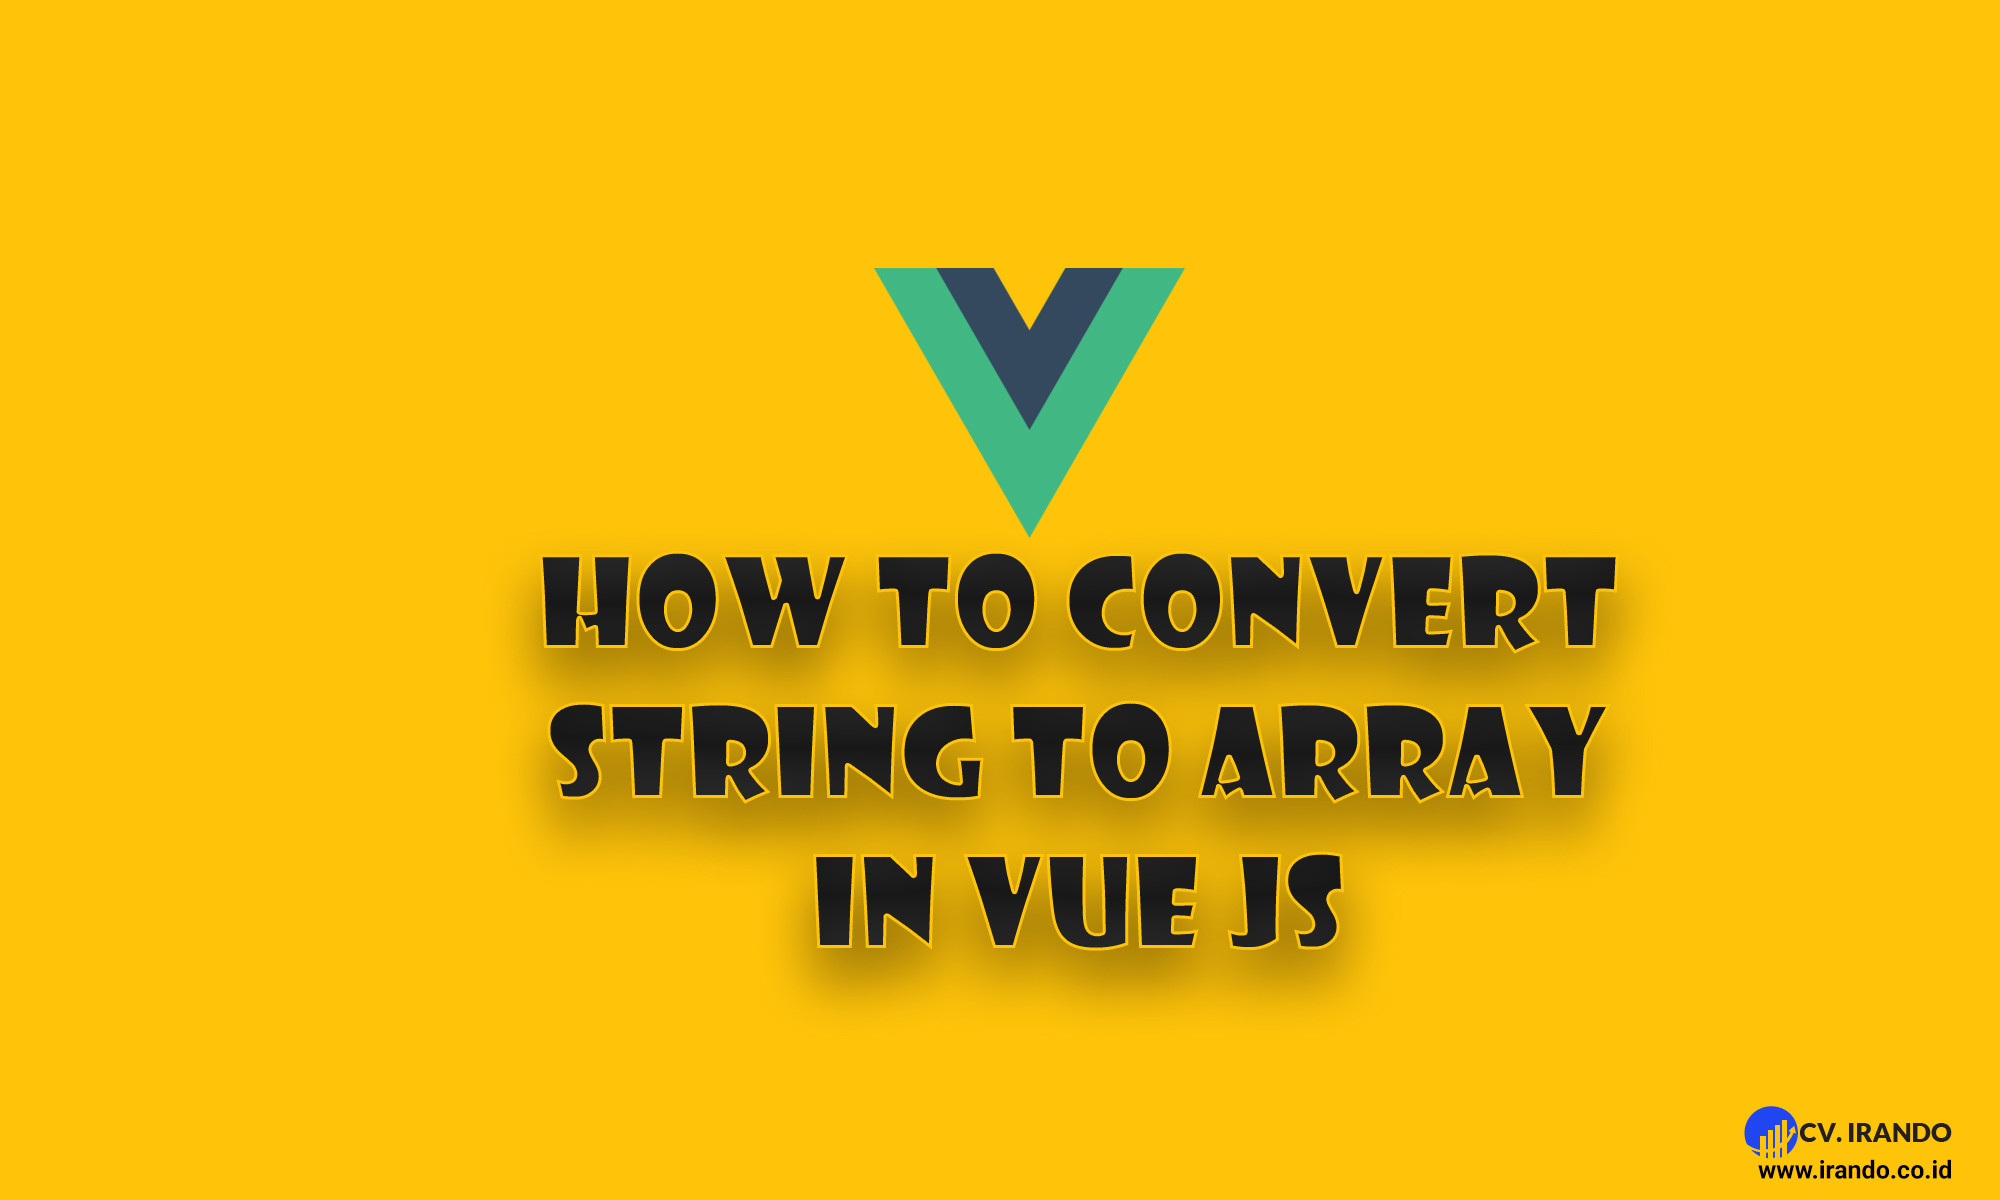 Vue JS Convert String to Array